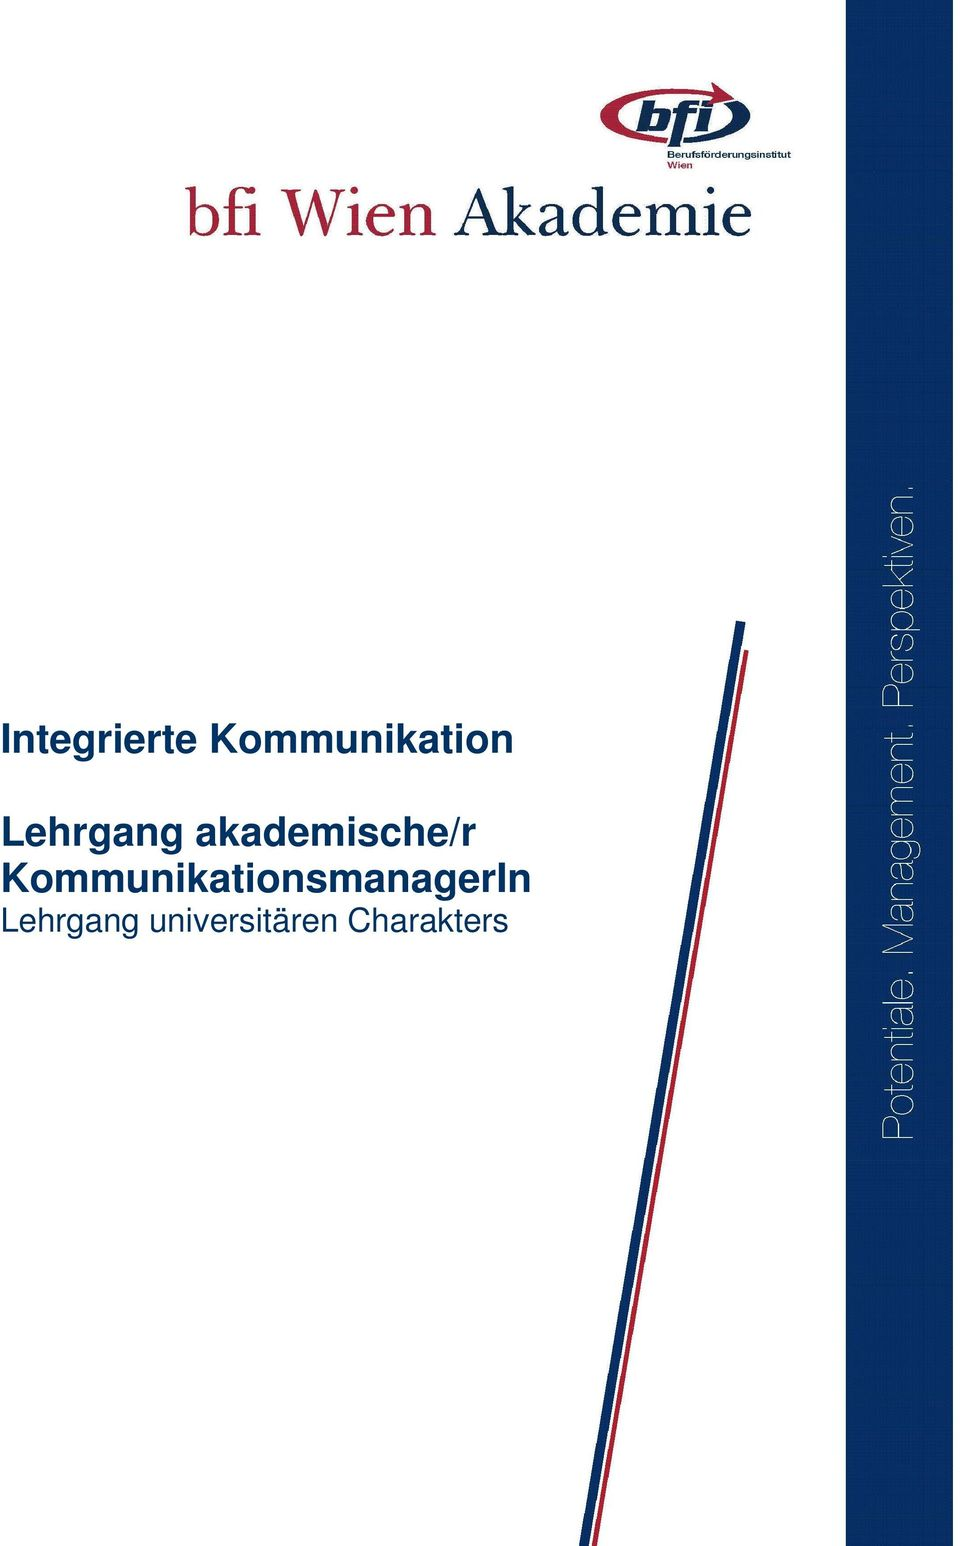 KommunikationsmanagerIn